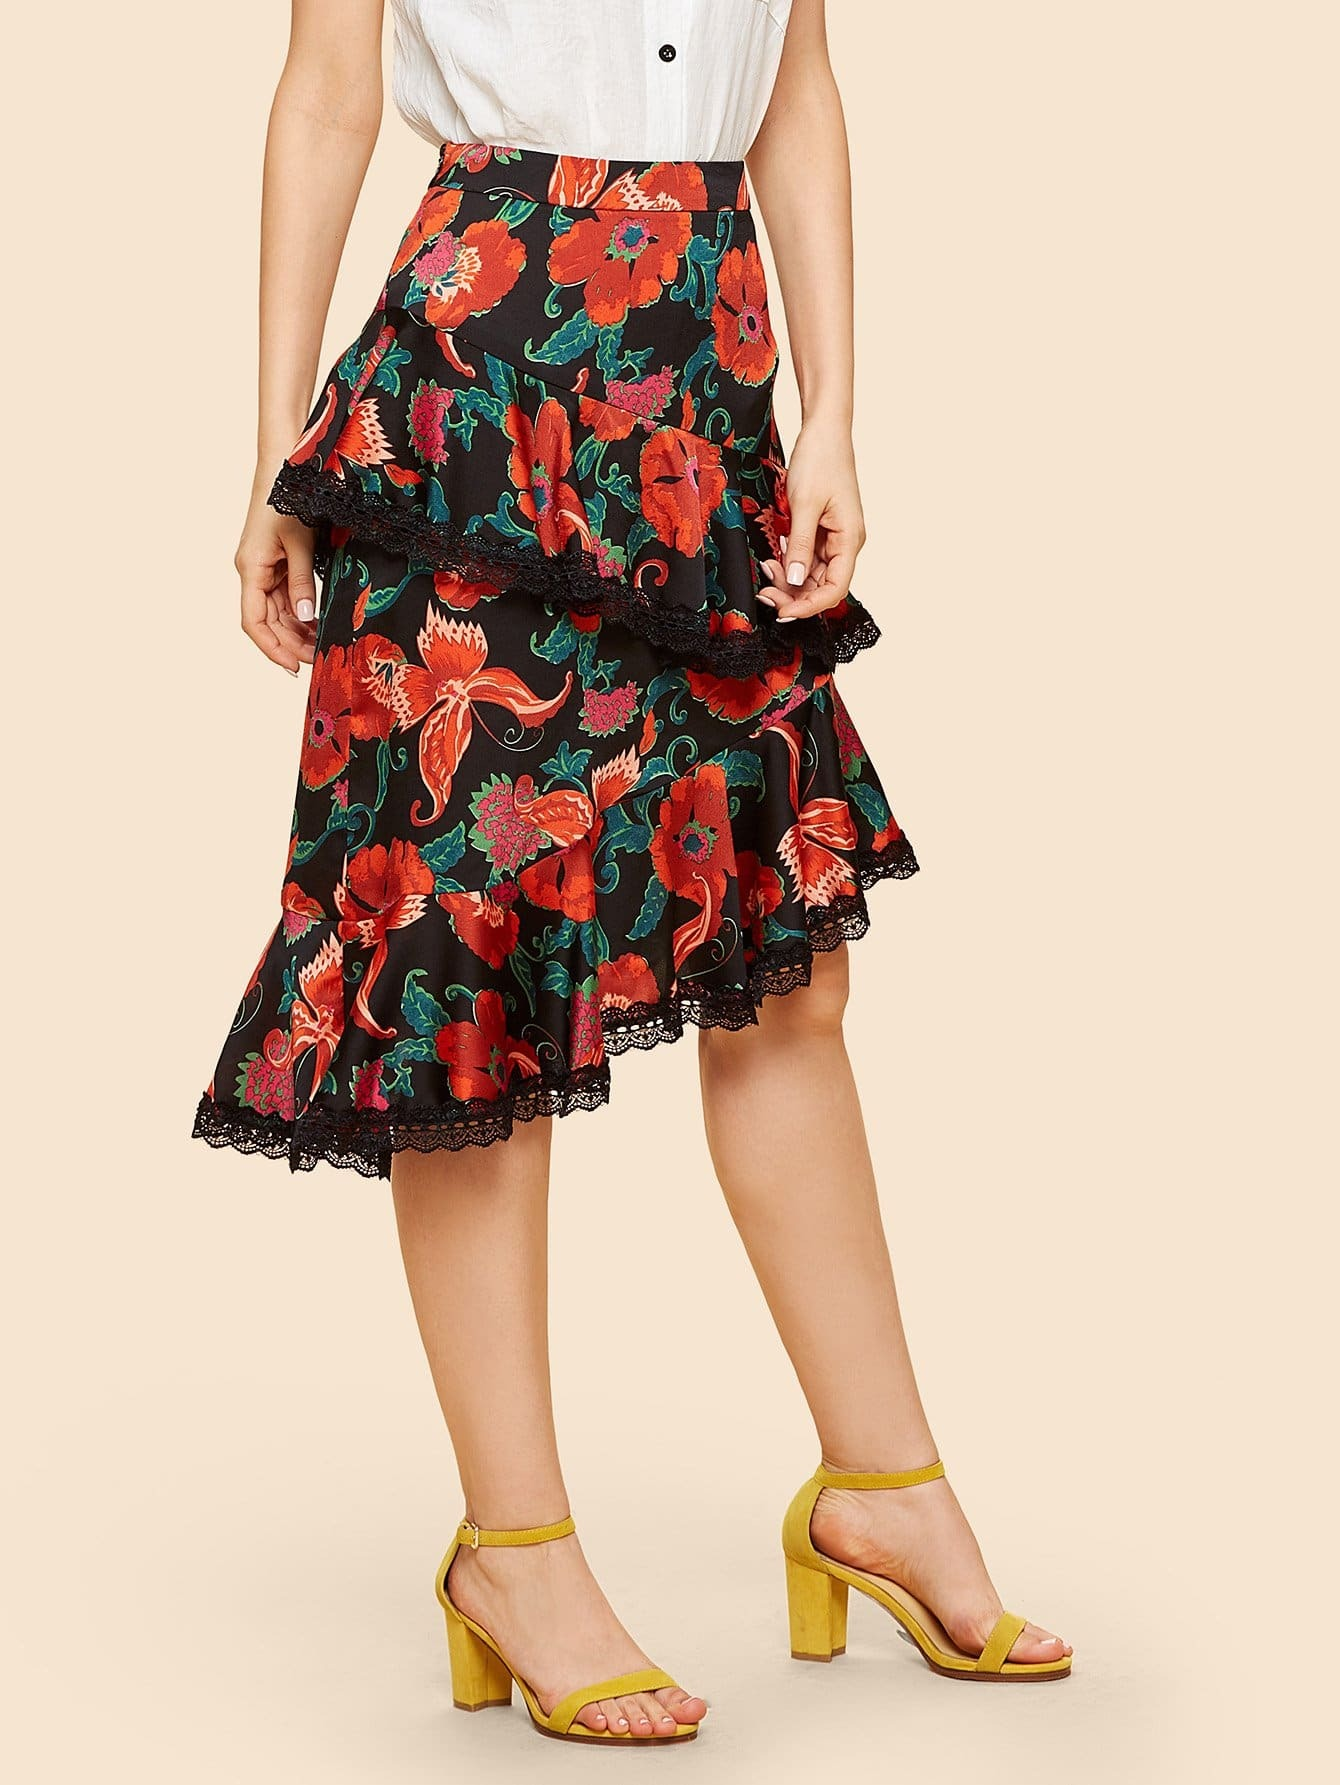 Lace Trim Floral Ruffle Skirt